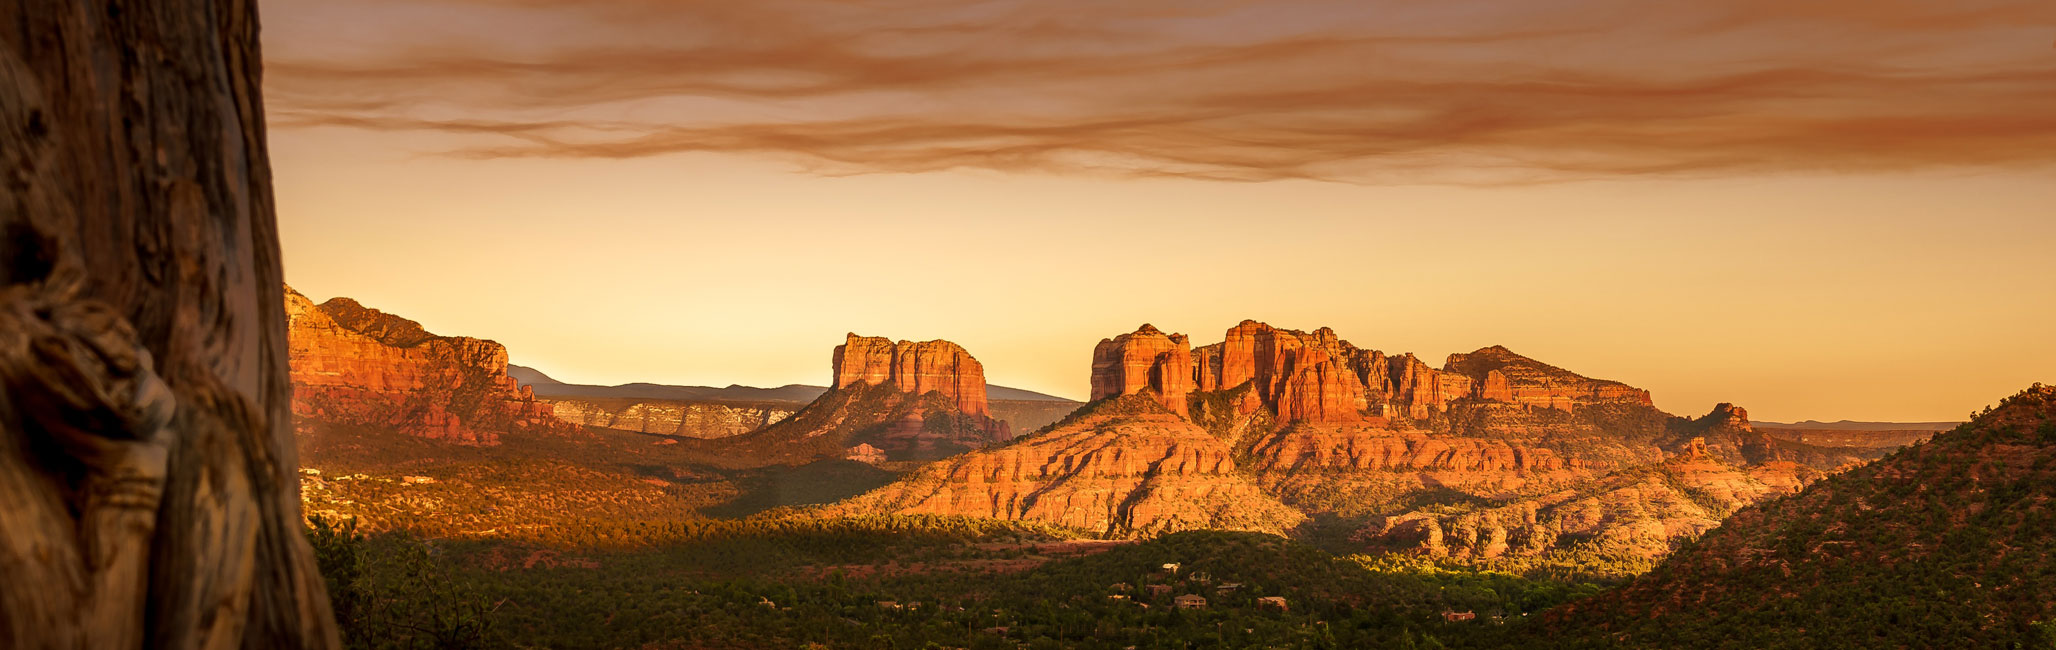 Concierge service to create custom Sedona Tour